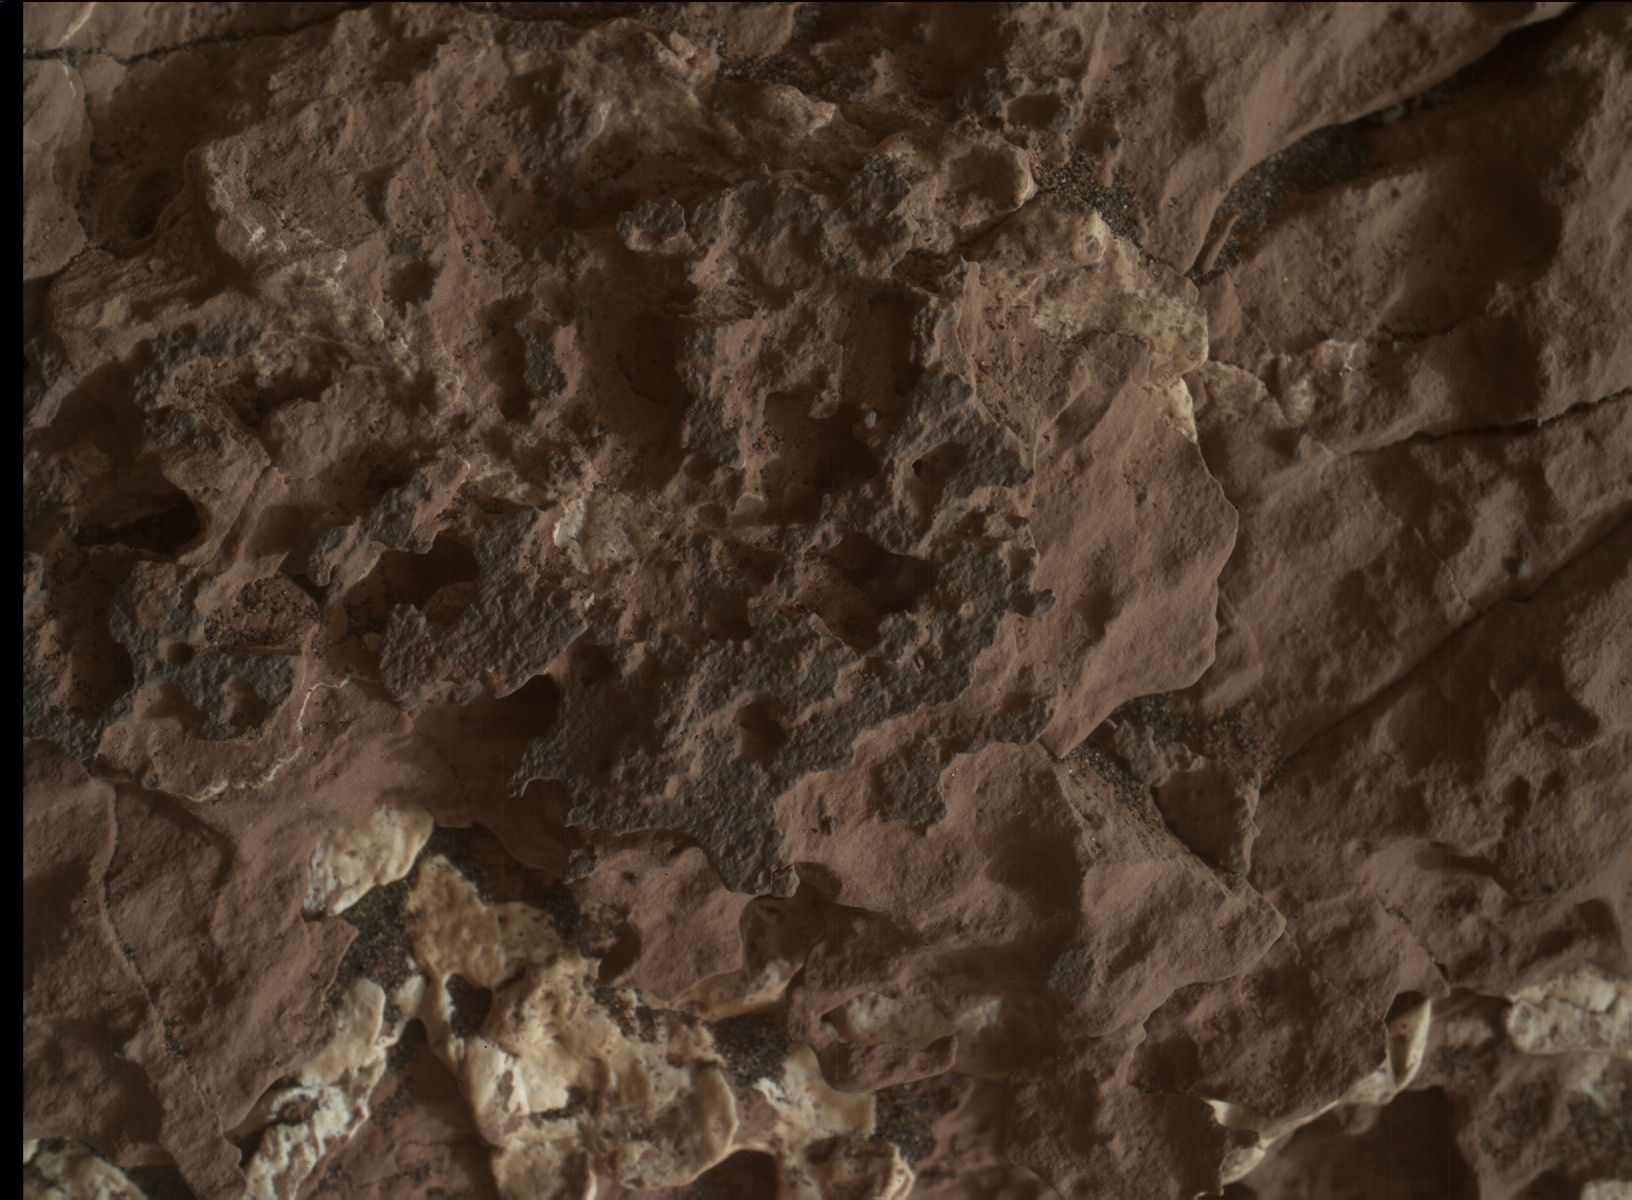 Nasa's Mars rover Curiosity acquired this image using its Mars Hand Lens Imager (MAHLI) on Sol 1661